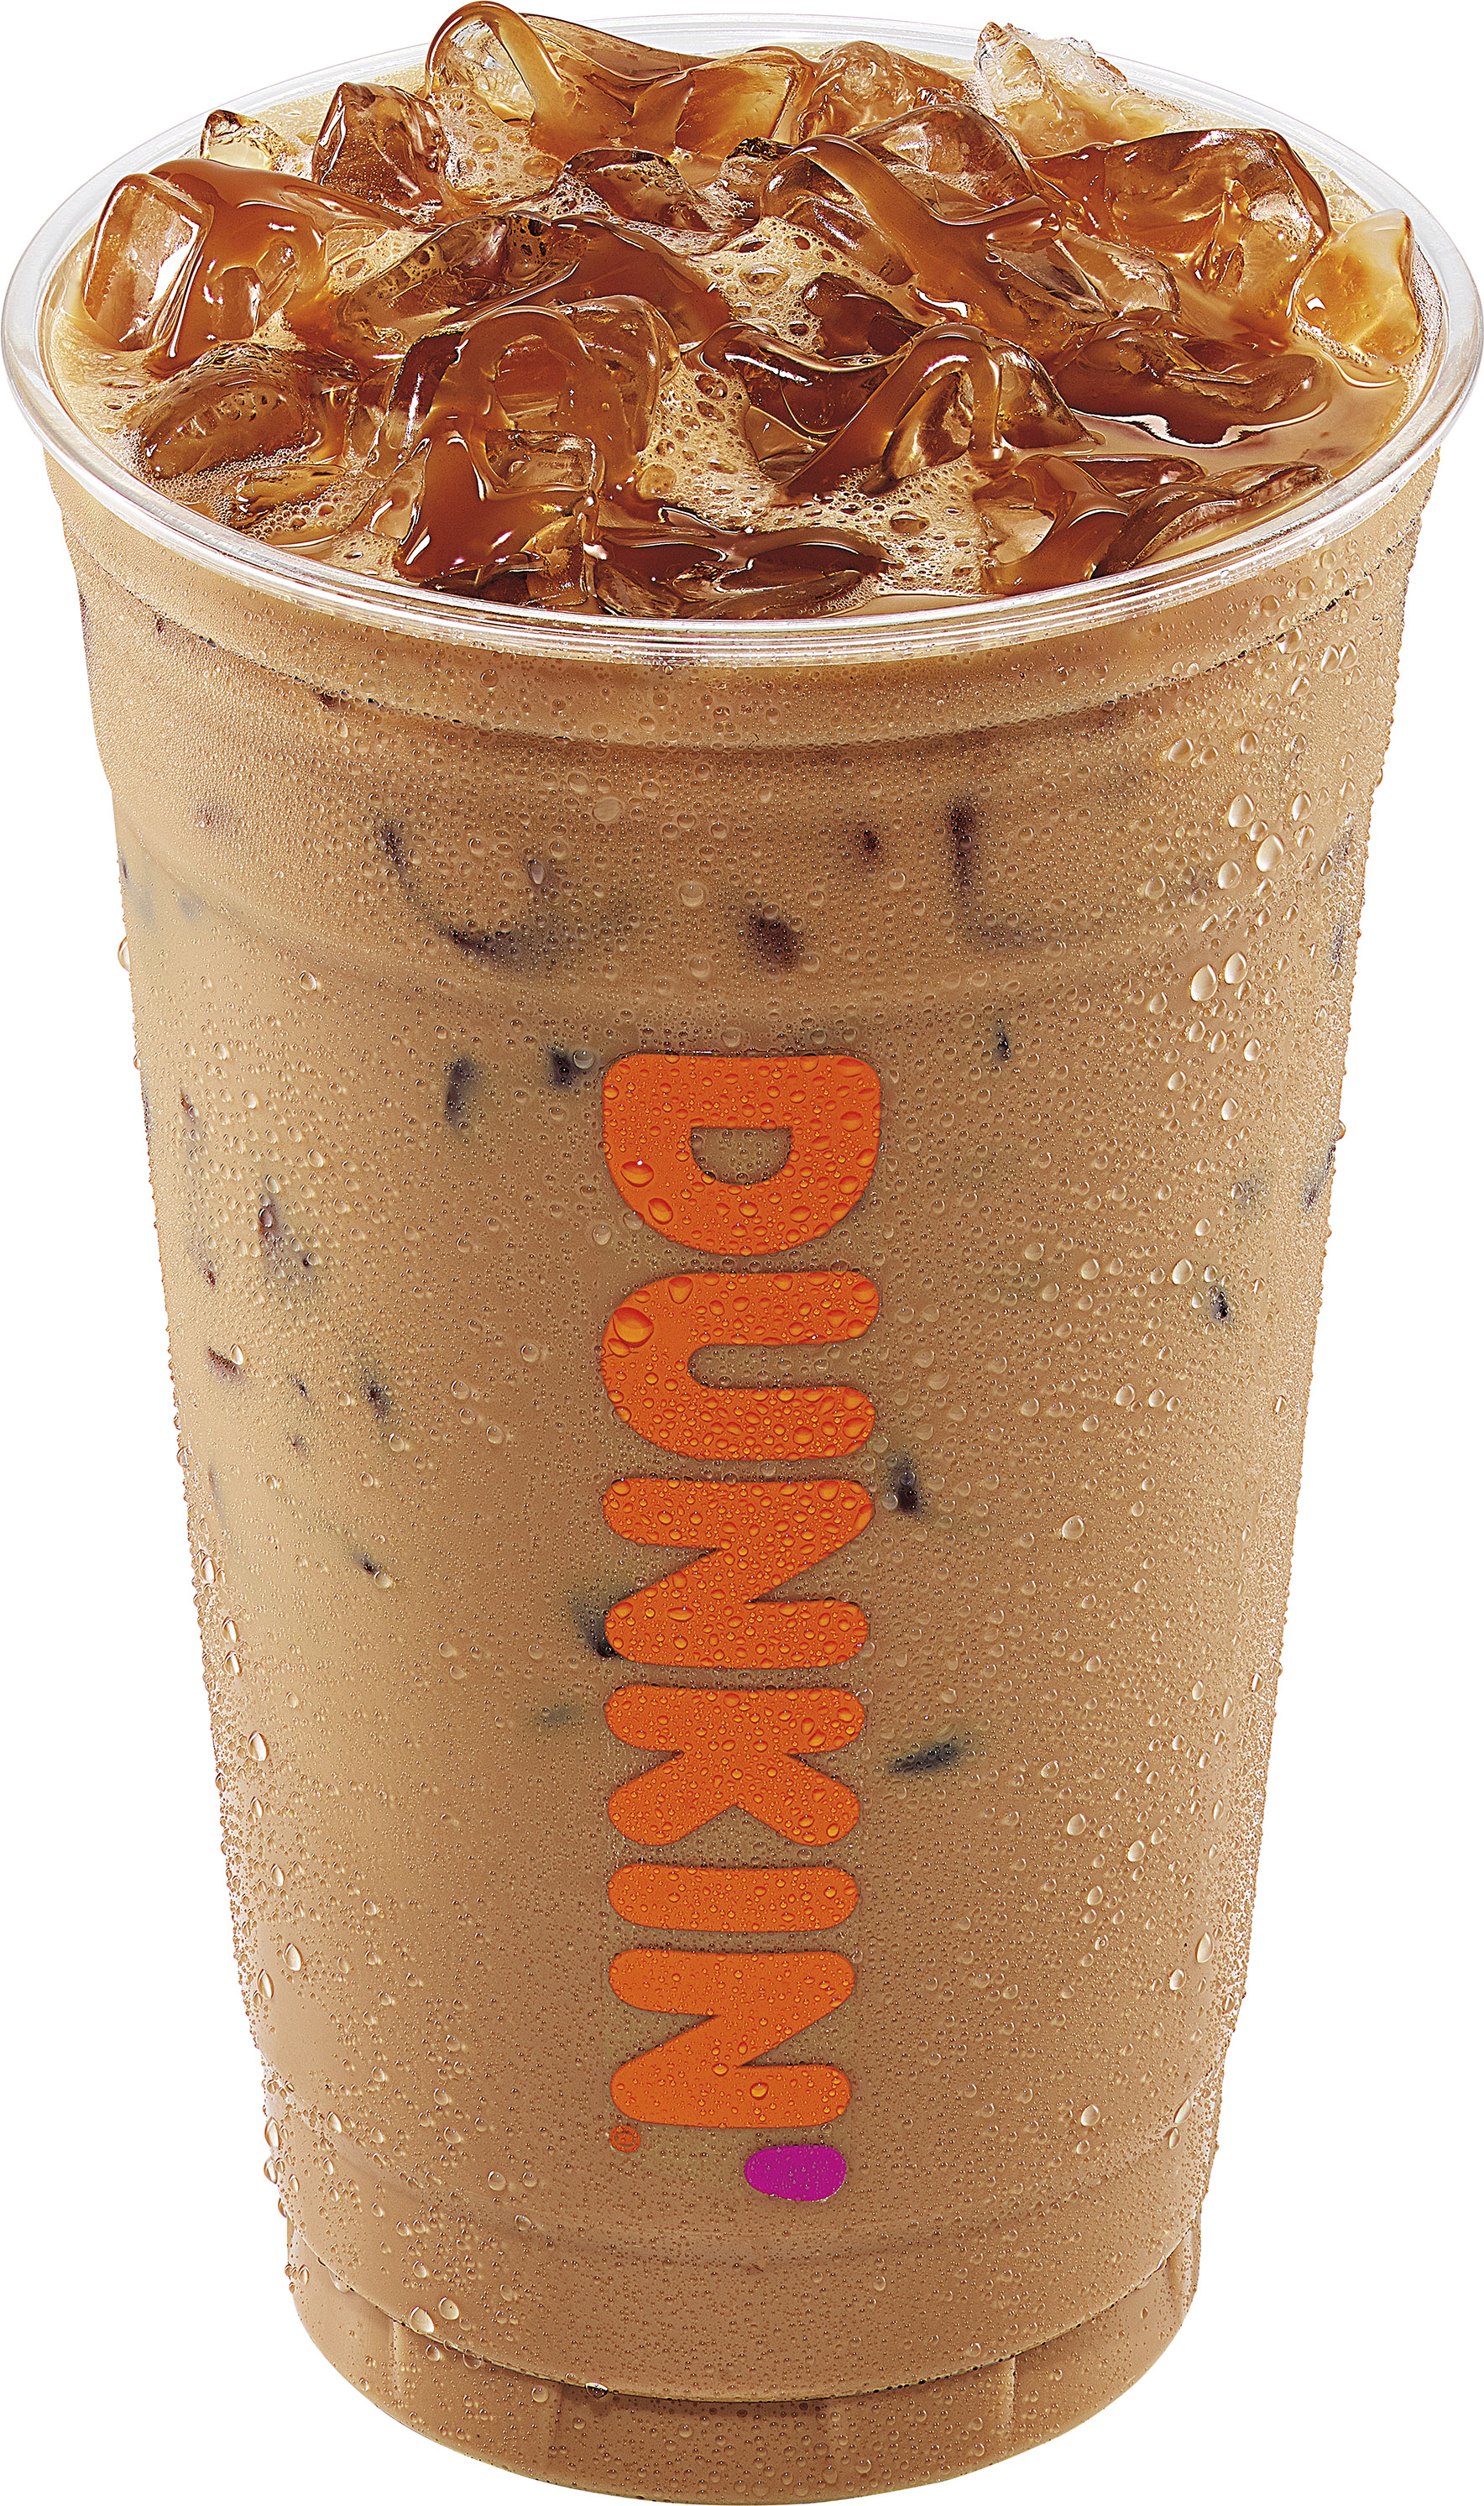 New Espresso Experience Arrives At Dunkin Giving America